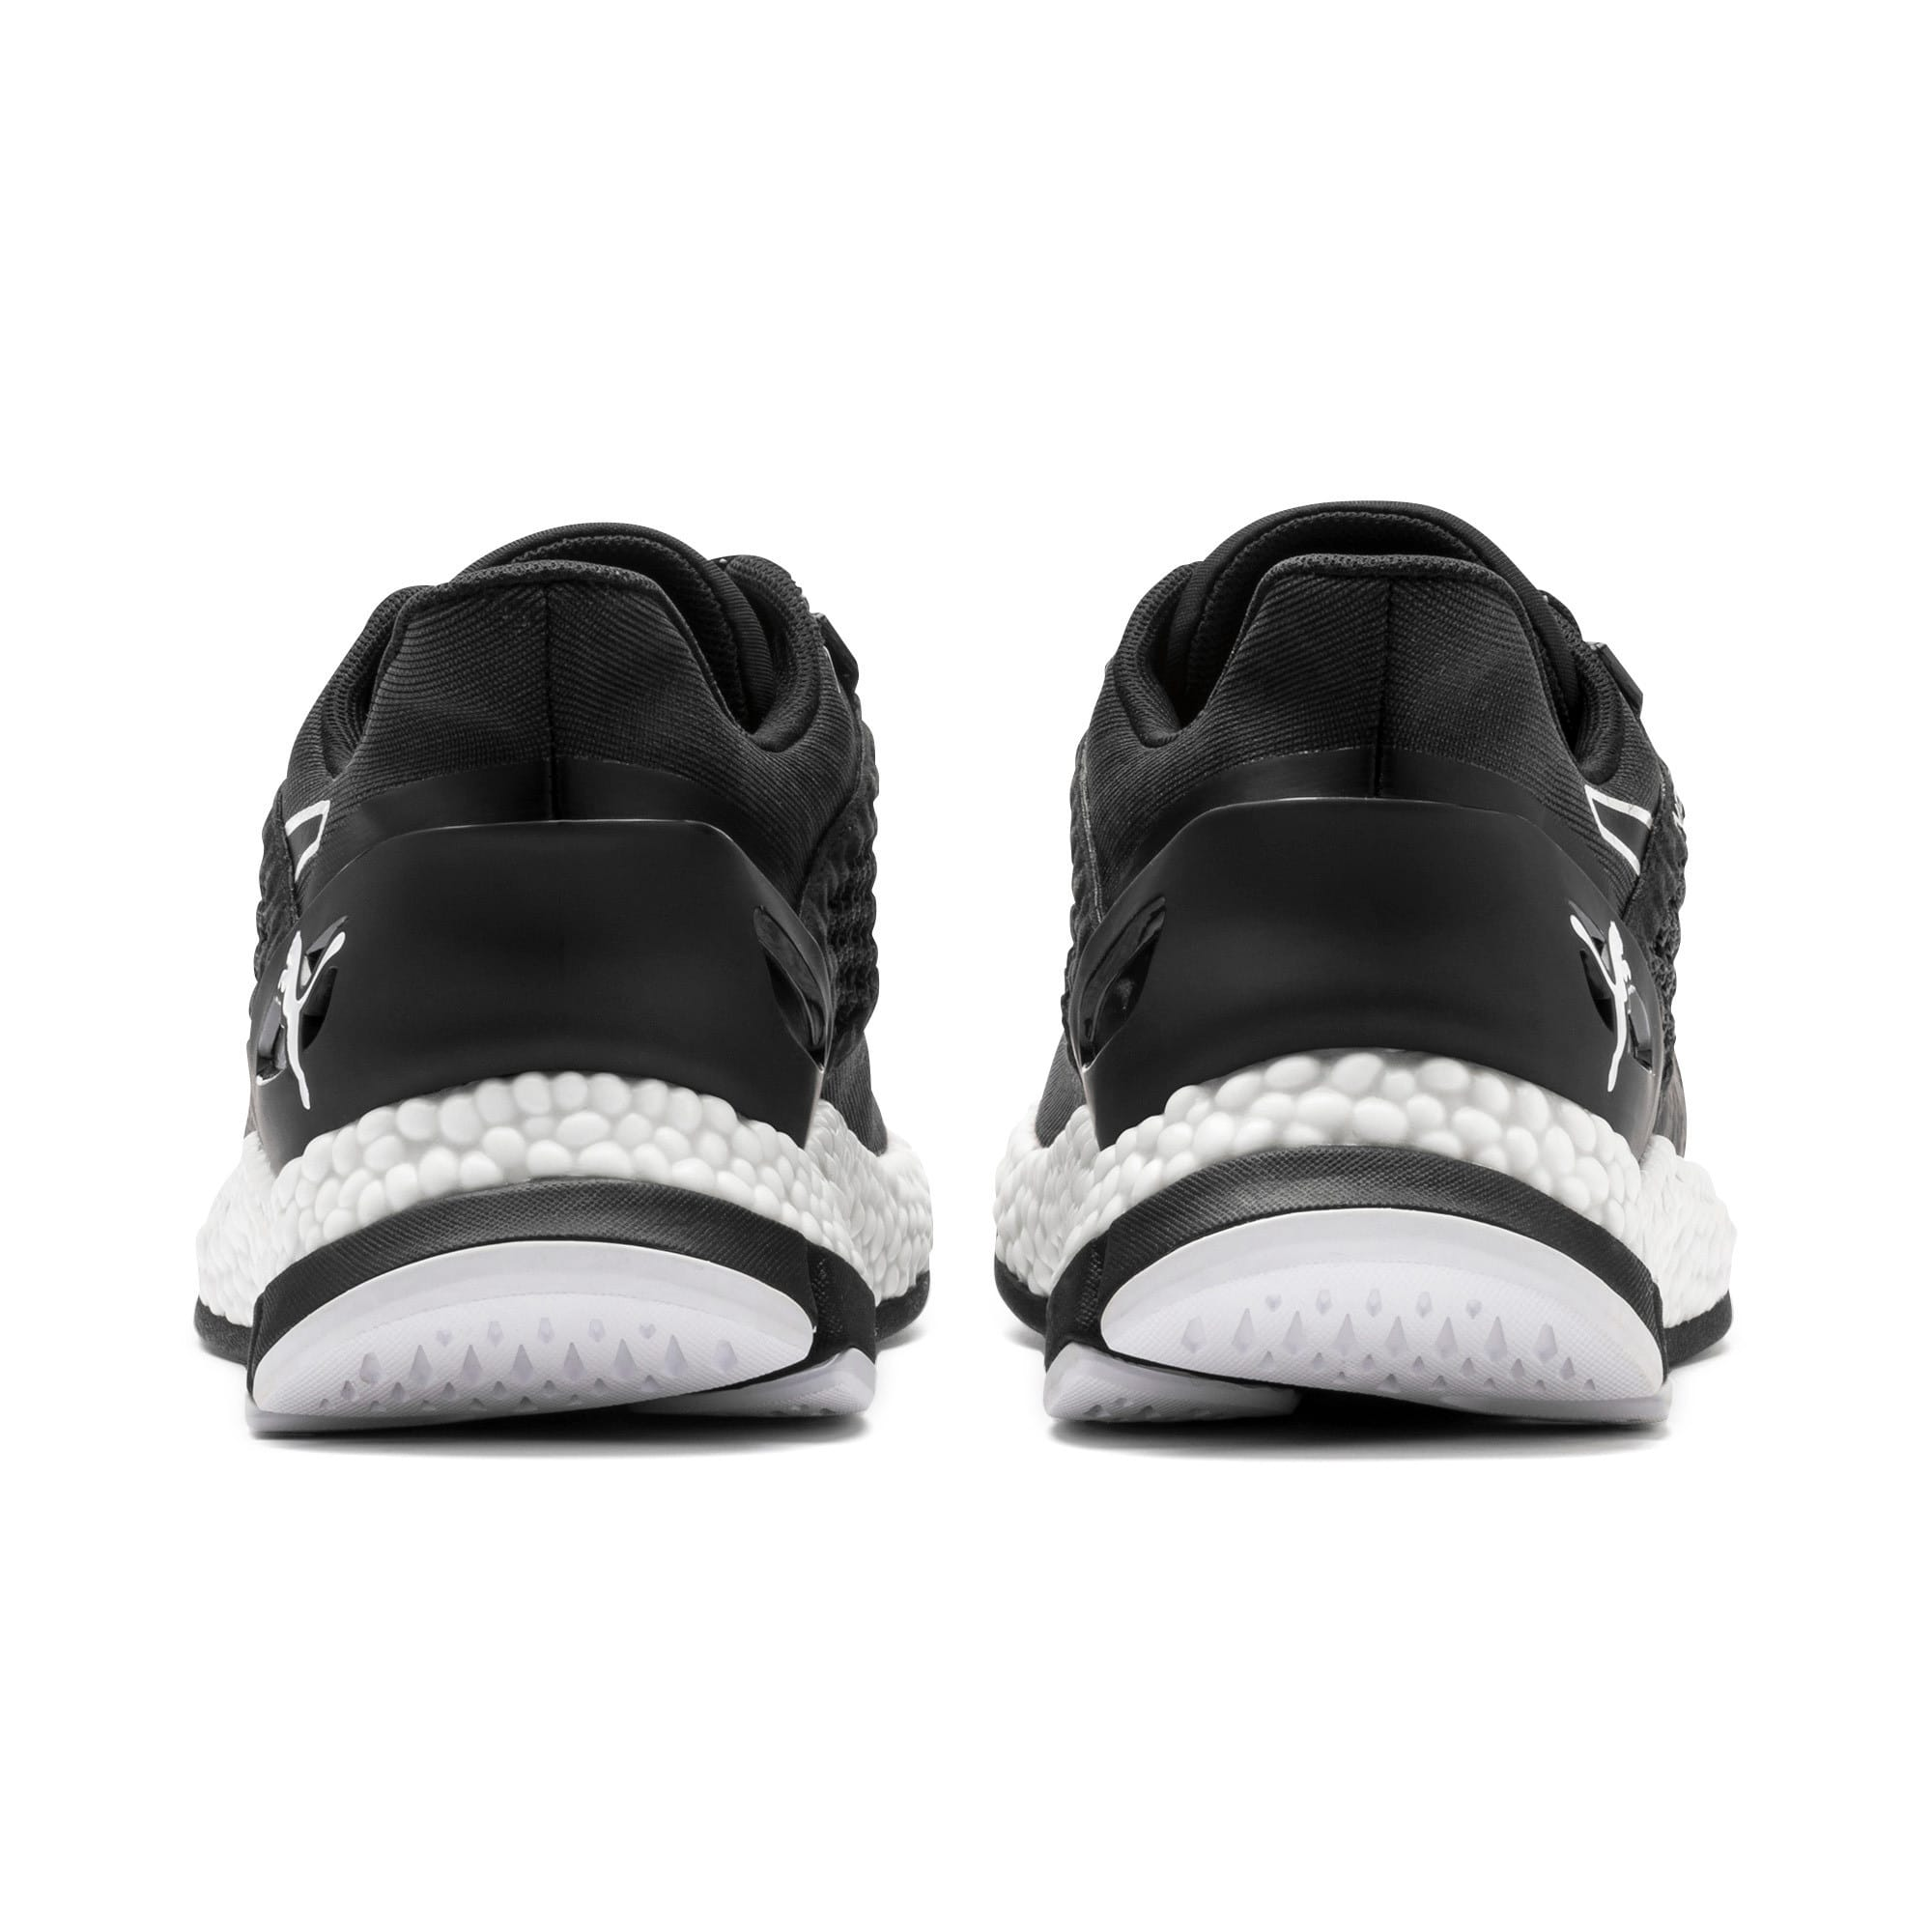 Thumbnail 4 of HYBRID NETFIT Astro Men's Running Shoes, Puma Black-Puma White, medium